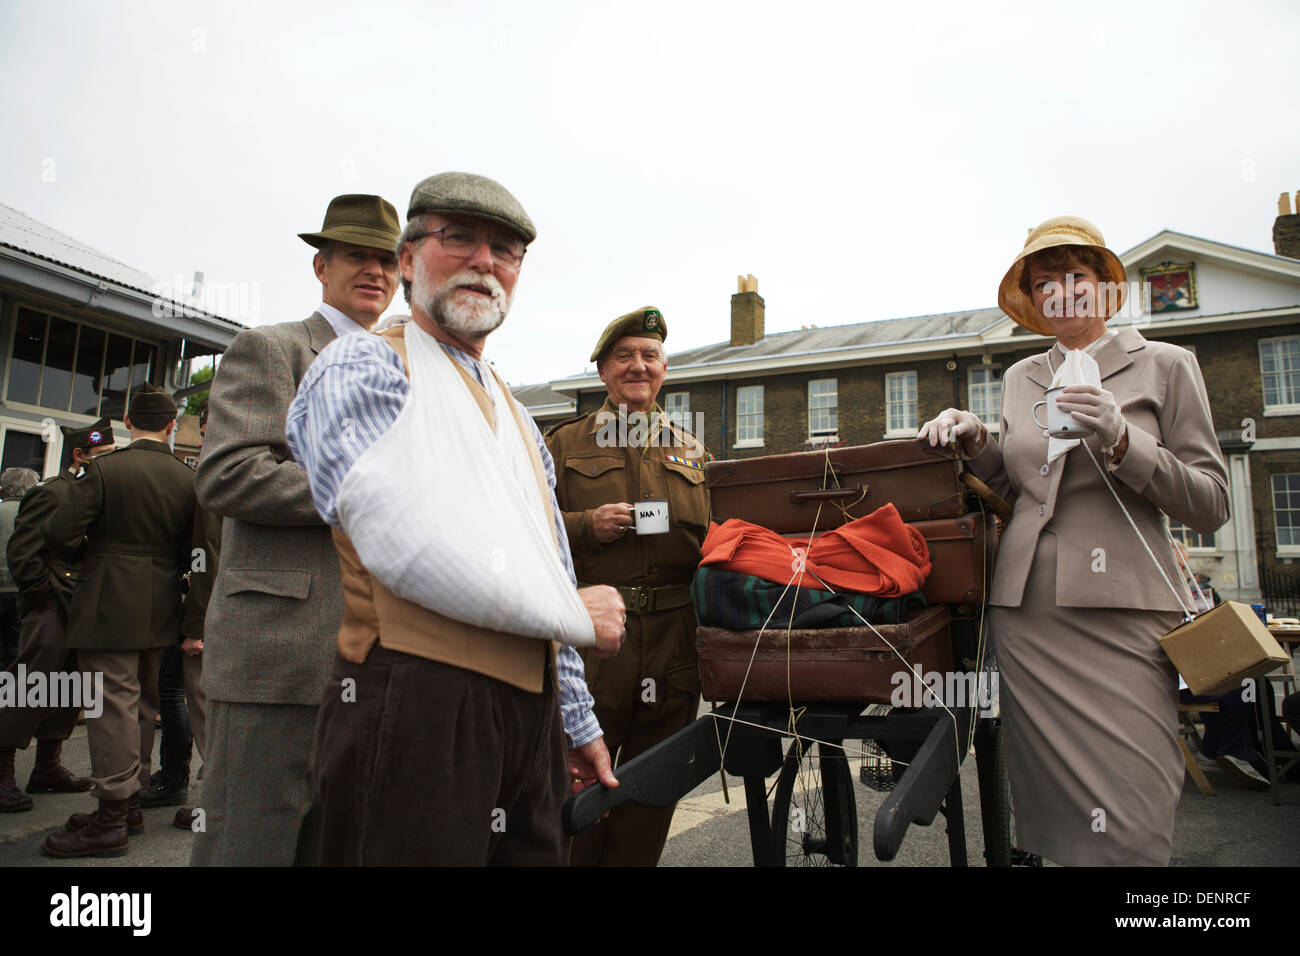 Chatham, UK. 21st Sep, 2013. Salute to the 40's - Britain's 1940's Home Front Event at The Historic Dockyard Chatham. - Stock Image